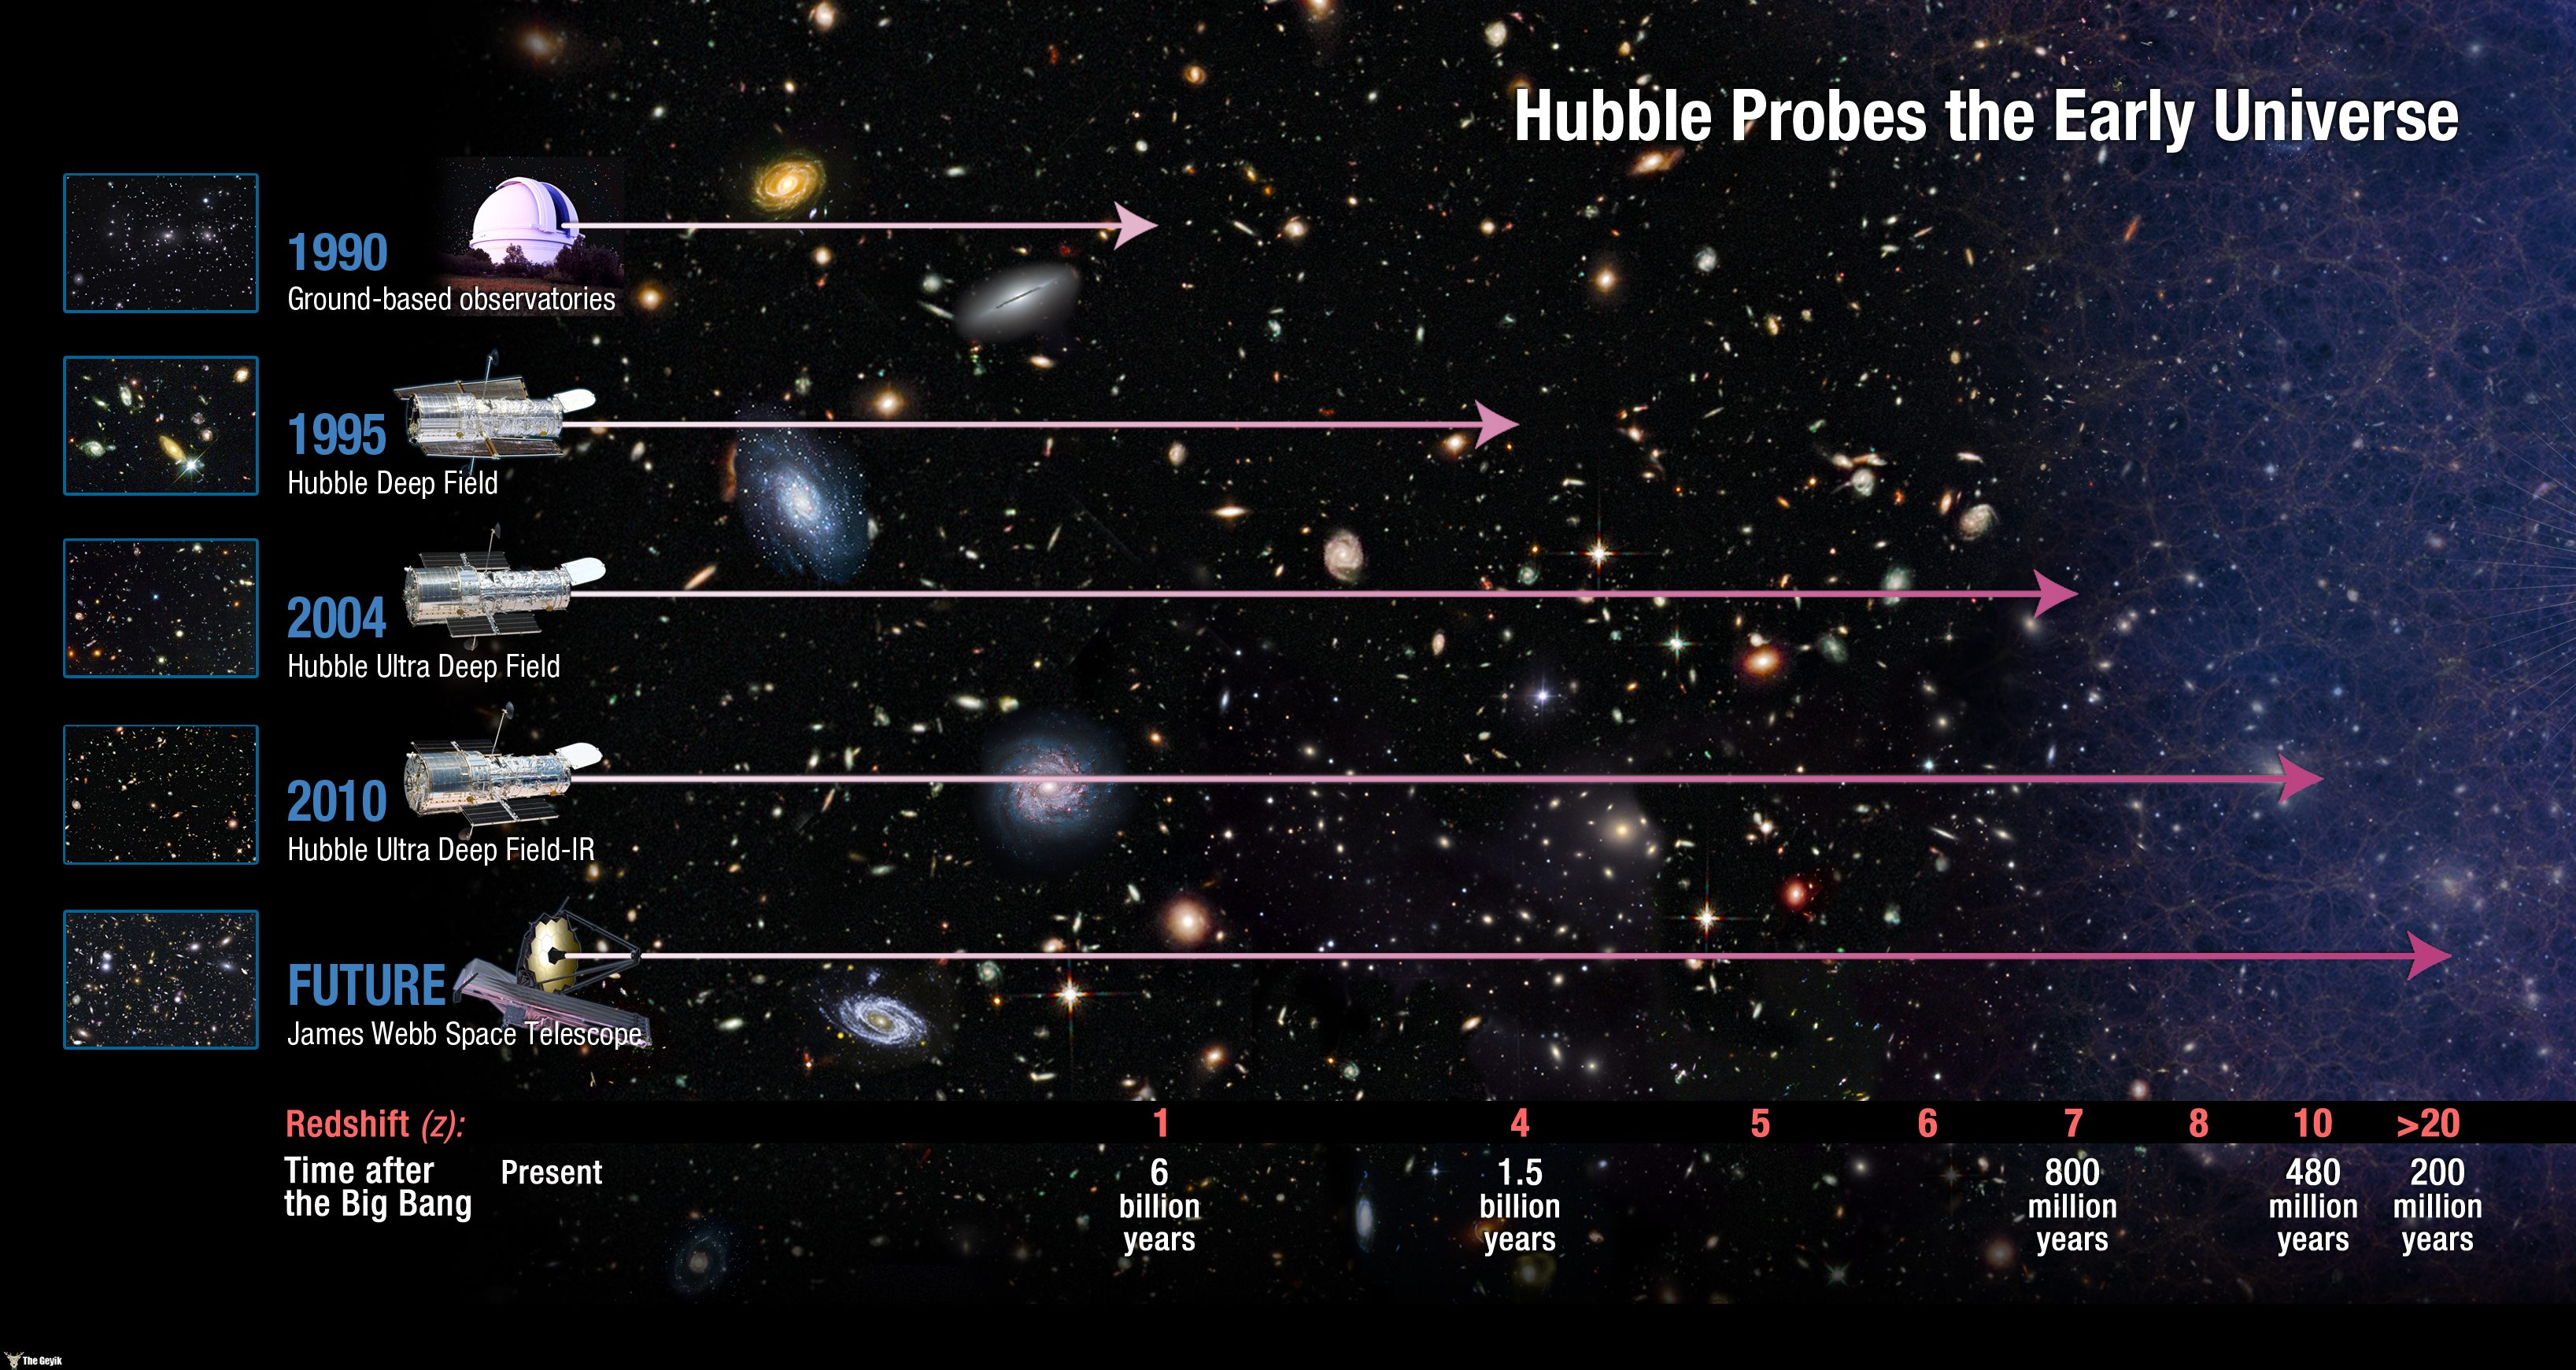 NASA Release date: Jan 26, 2011 How far does Hubble see? This diagram shows how Hubble has revolutionised the study of the distant, early Universe. Before Hubble was launched, ground-based telescopes were able to observe up to a redshift of around 1, about half way back through cosmic history. Hubble's latest instrument, Wide Field Camera 3 has identified a candidate galaxy at a redshift of 10 — around 96 per cent of the way back to the Big Bang. The forthcoming NASA/ESA/CSA James Webb Space Telescope will see further still. Credit: NASA, ESA To read more go to: http://www.nasa.gov/mission_pages/hubble/science/farthest-galaxy.html NASA Goddard Space Flight Center enables NASA's mission through four scientific endeavors: Earth Science, Heliophysics, Solar System Exploration, and Astrophysics. Goddard plays a leading role in NASA's accomplishments by contributing compelling scientific knowledge to advance the Agency's mission. Follow us on Twitter Join us on Facebook